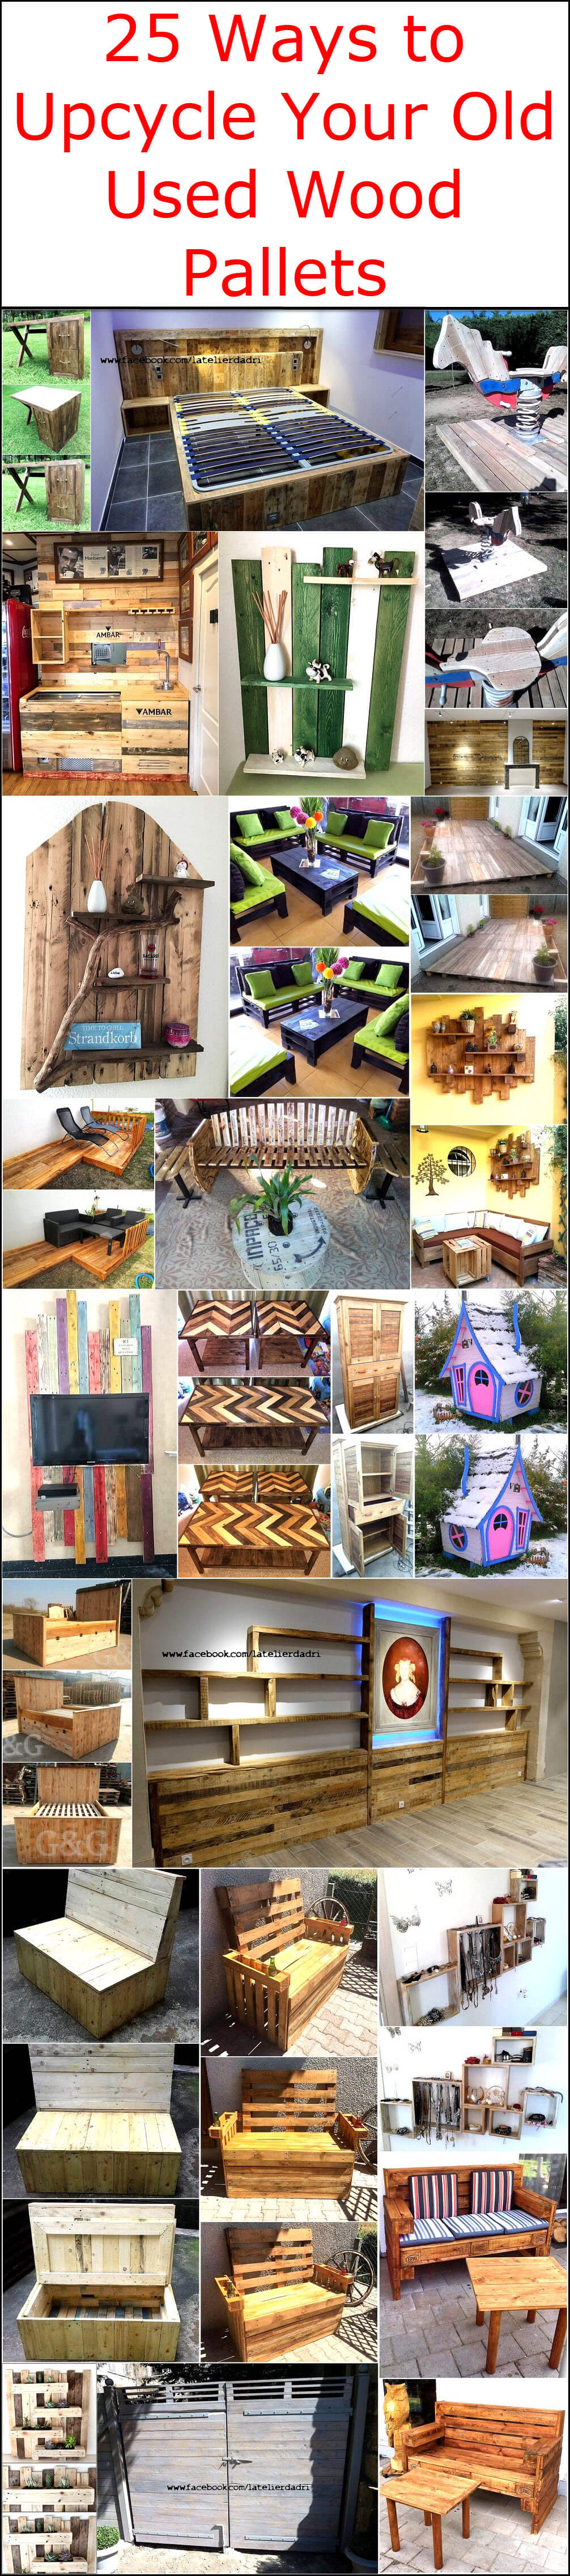 25 Ways to Upcycle Your Old Used Wood Pallets